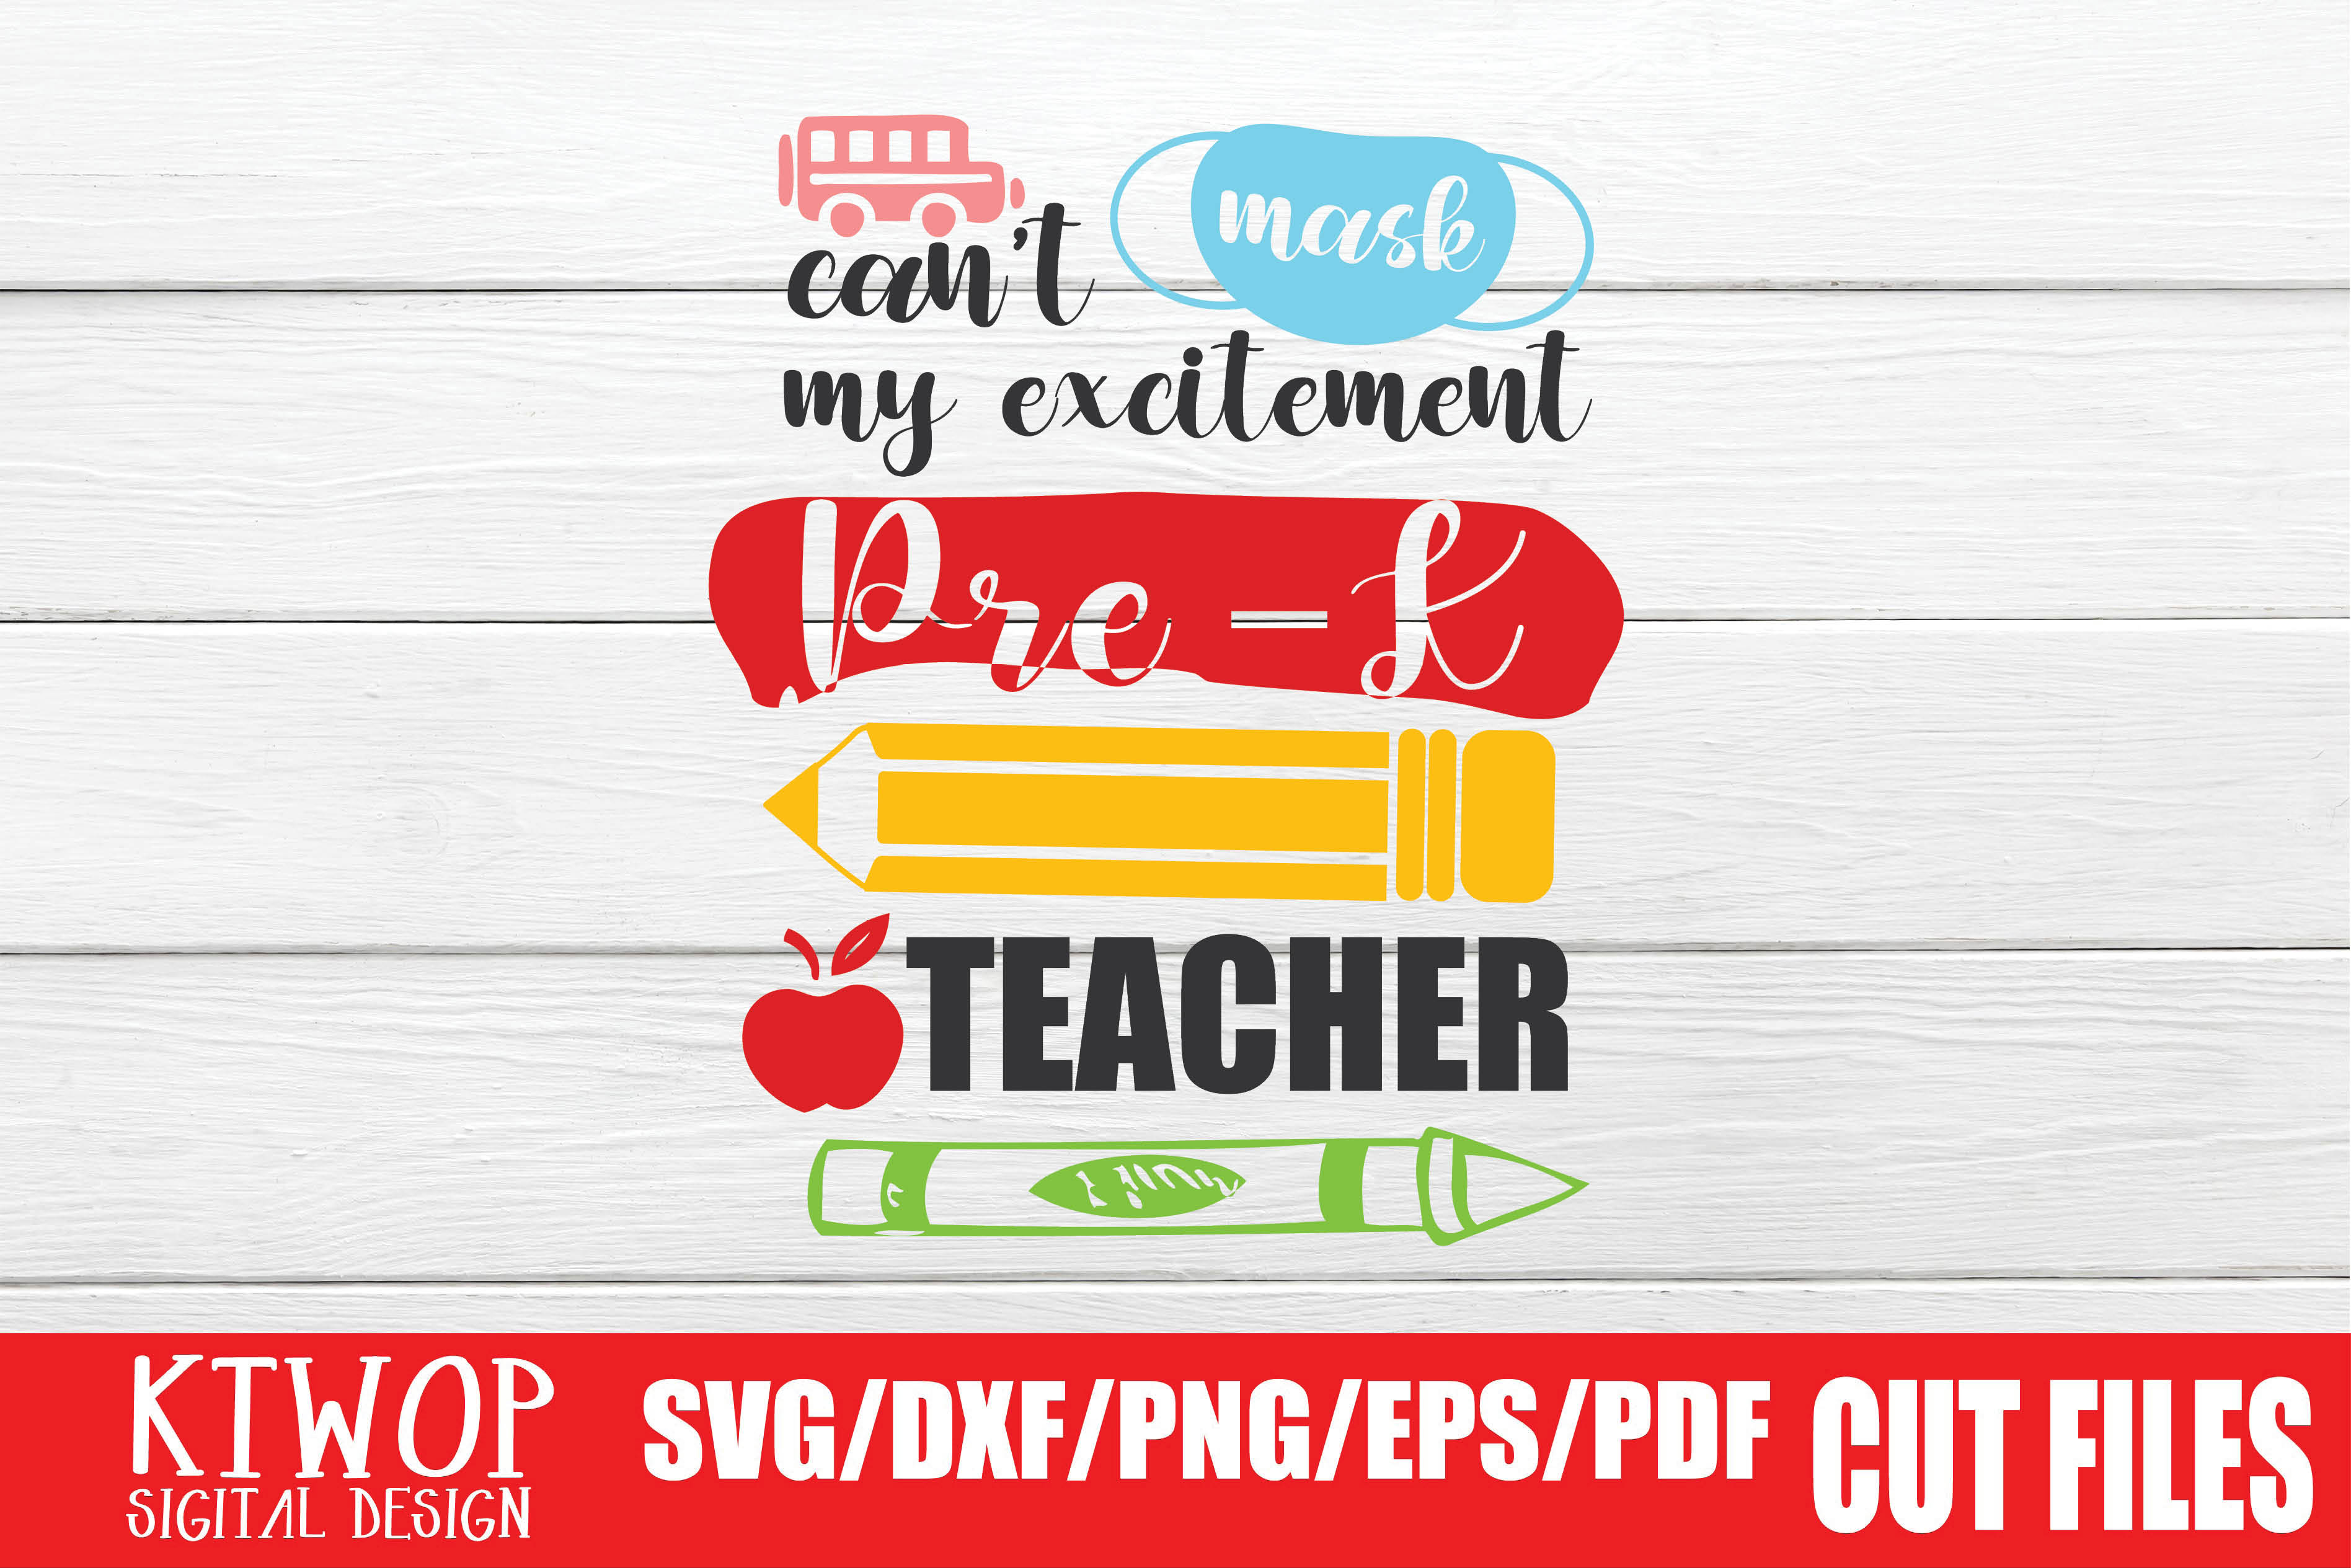 Can T Mask My Excitement Pre K Teacher Graphic By Ktwop Creative Fabrica